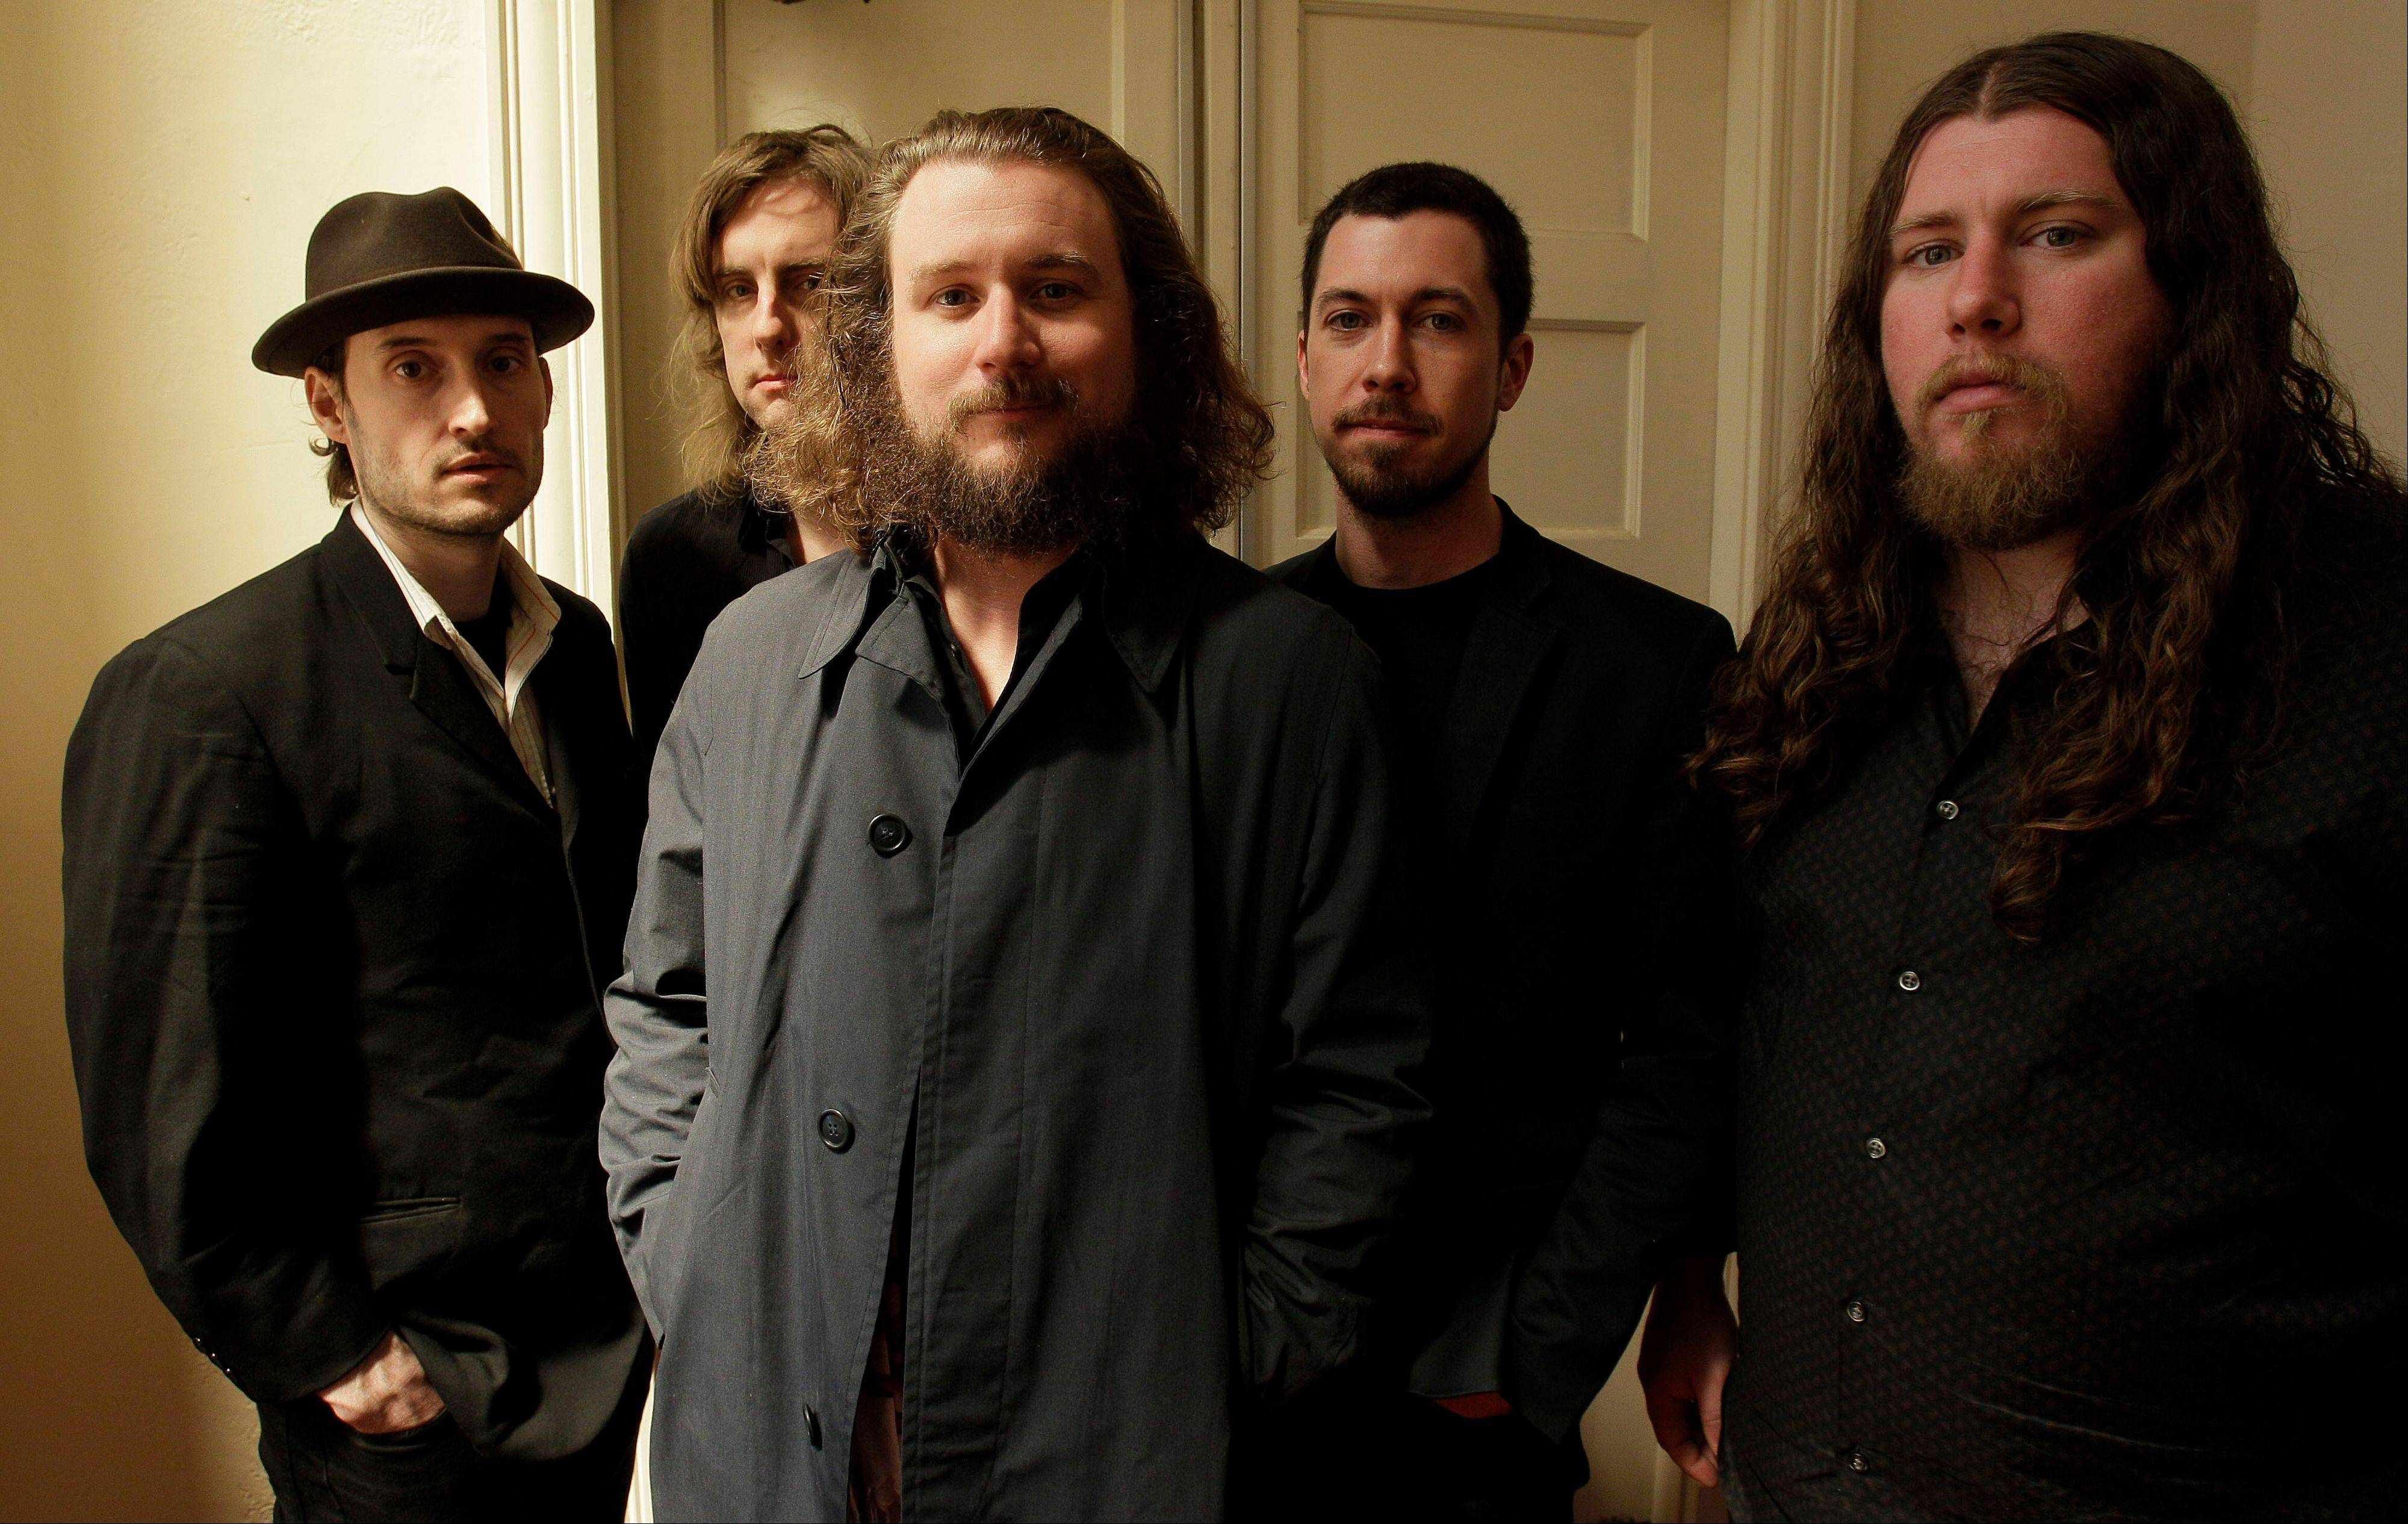 Contemporary Southern rockers My Morning Jacket are one of this year's headliners.